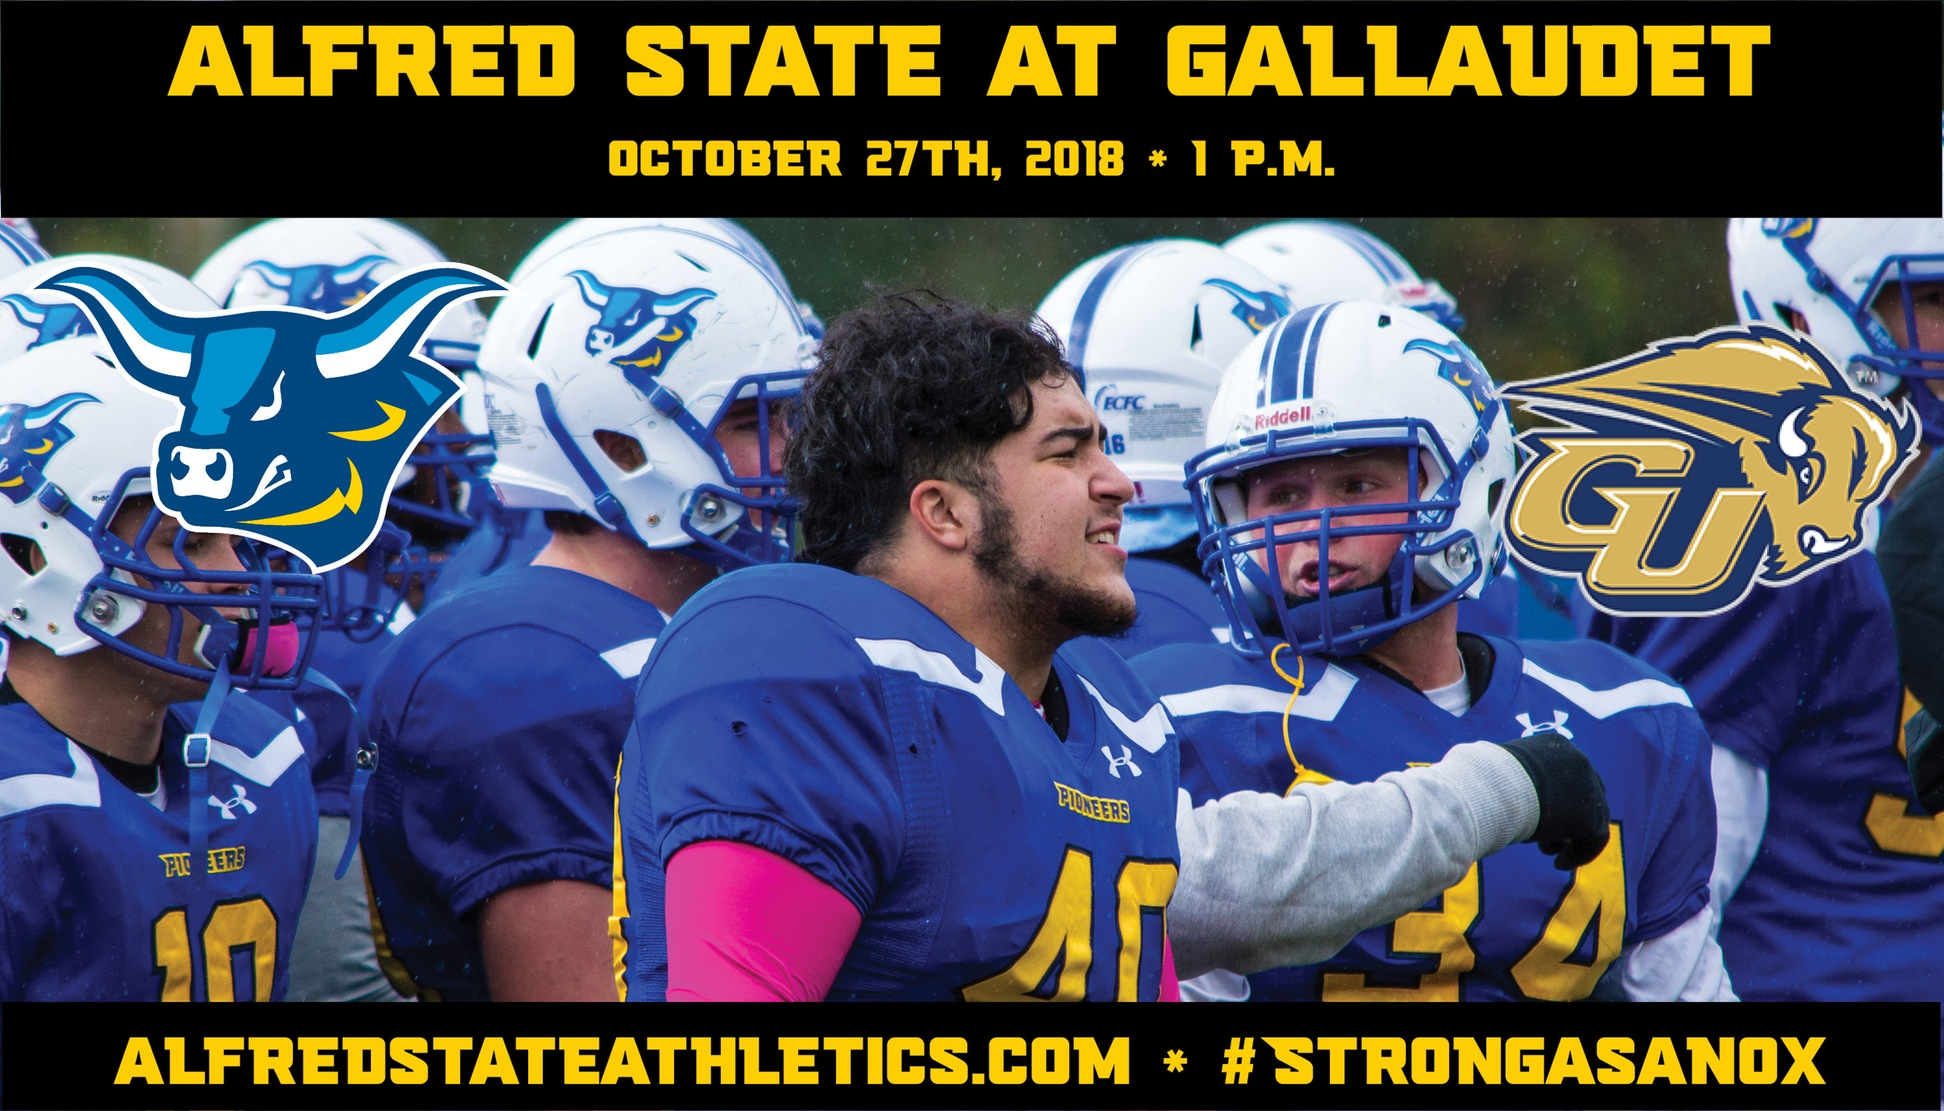 Alfred State travels to DC to battle Gallaudet on Saturday